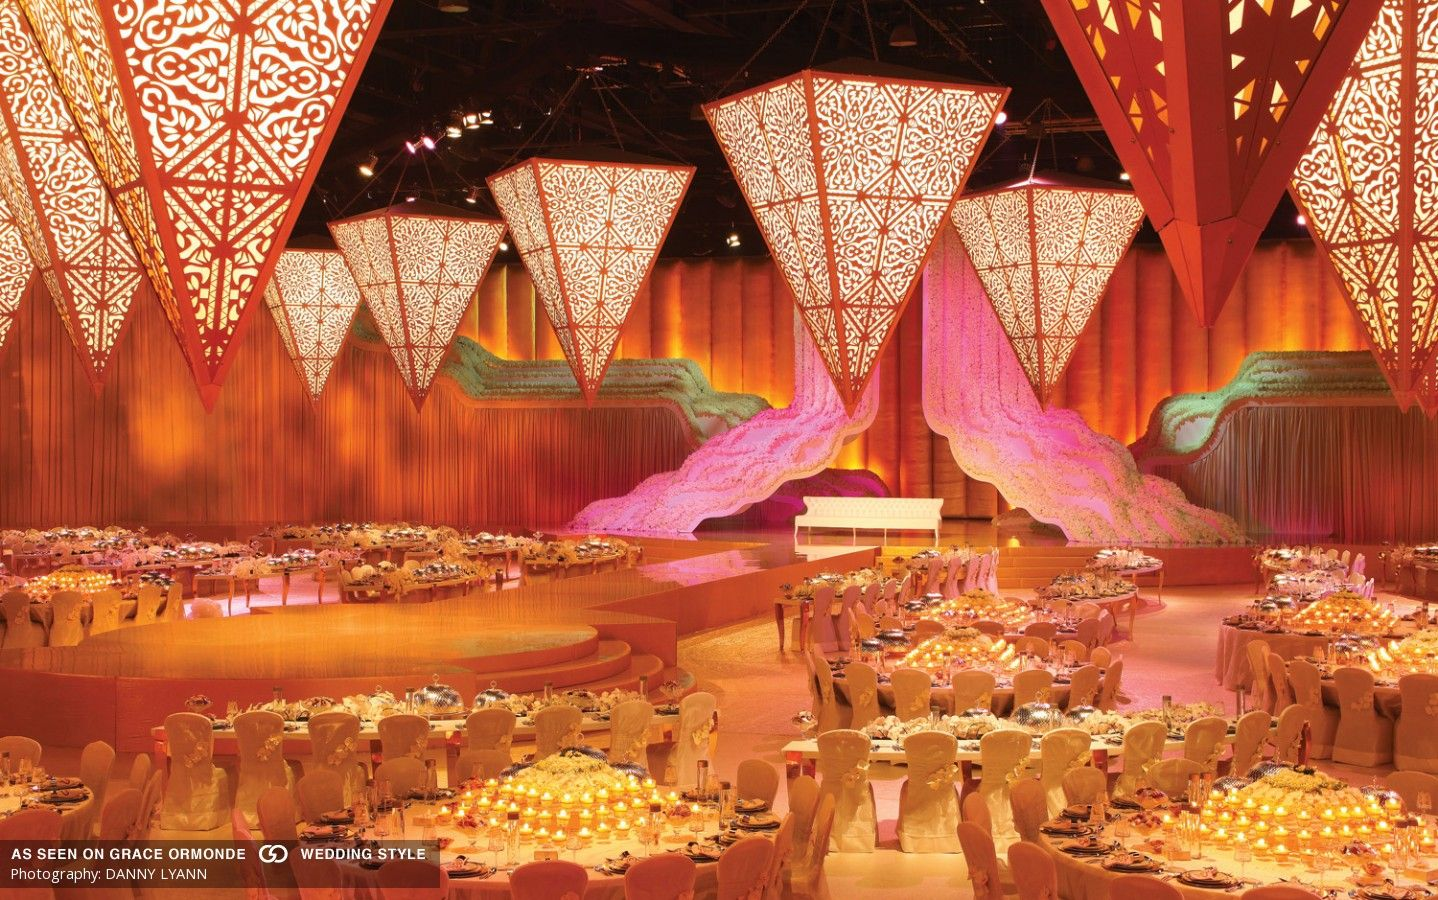 wedding stage decoration pics%0A Oversized lasercut lanterns  cascading waterfall of flowers on the stage   and tabletops featuring pyramids of candles and blossoms  except stage decor